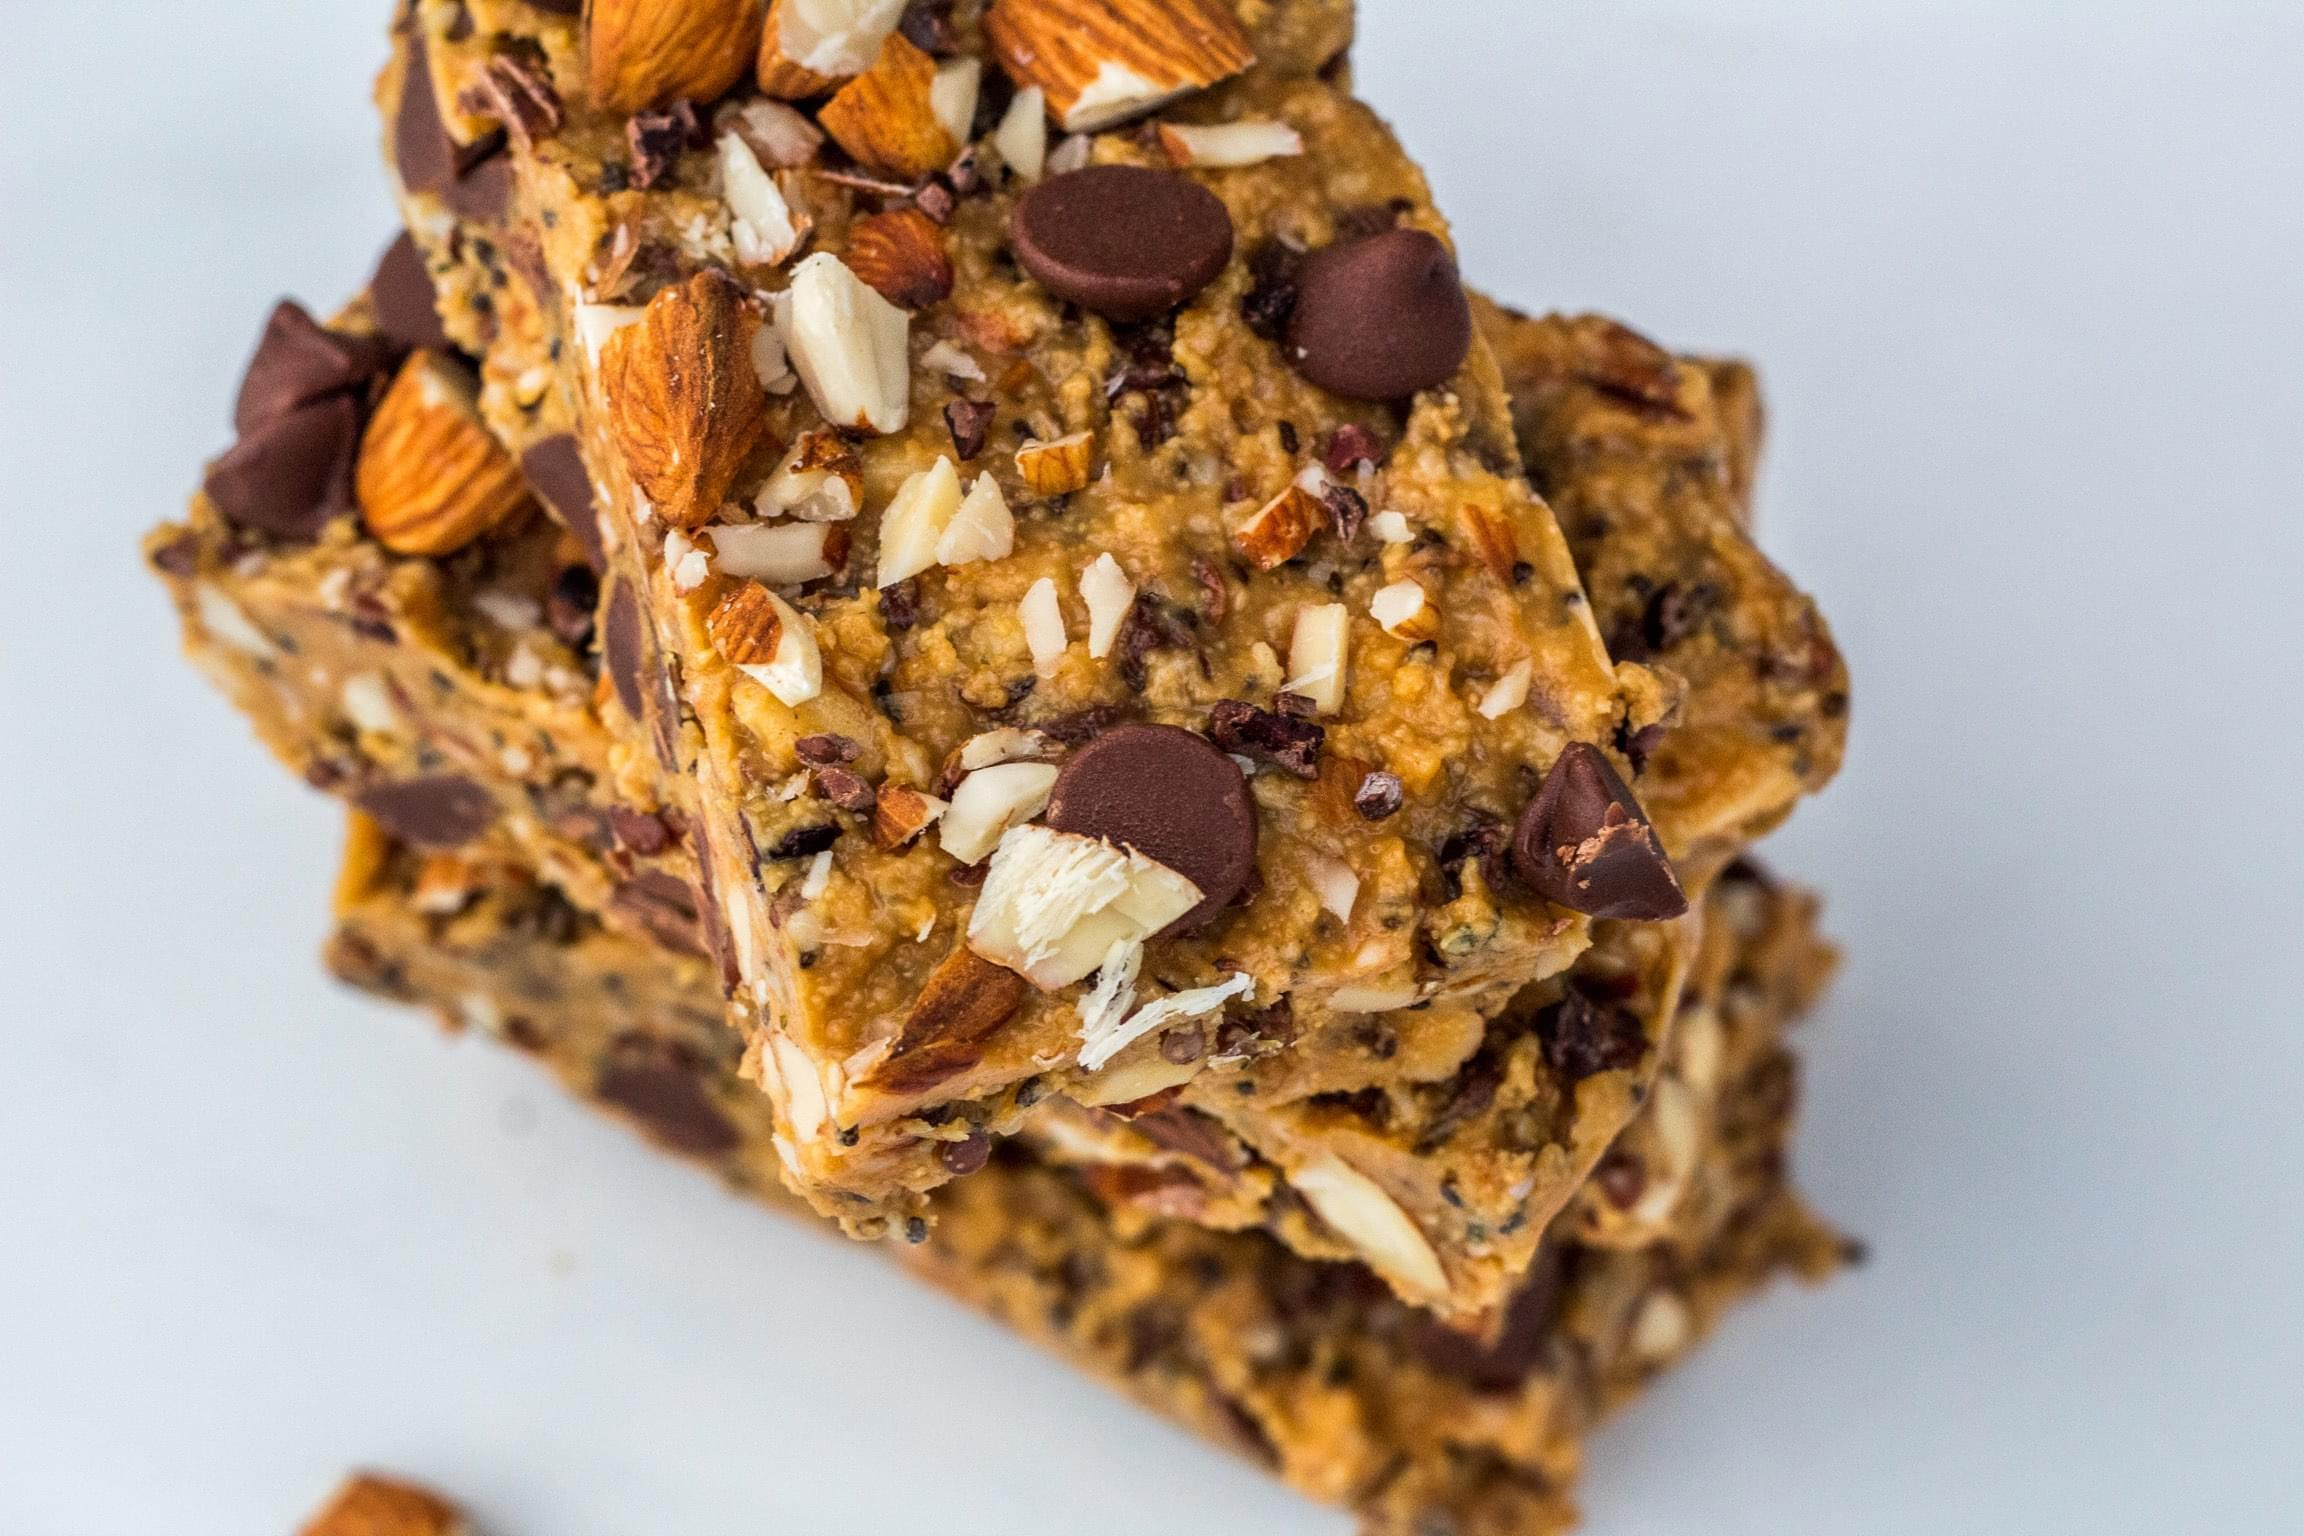 Crunchy chocolate almond peanut butter bars